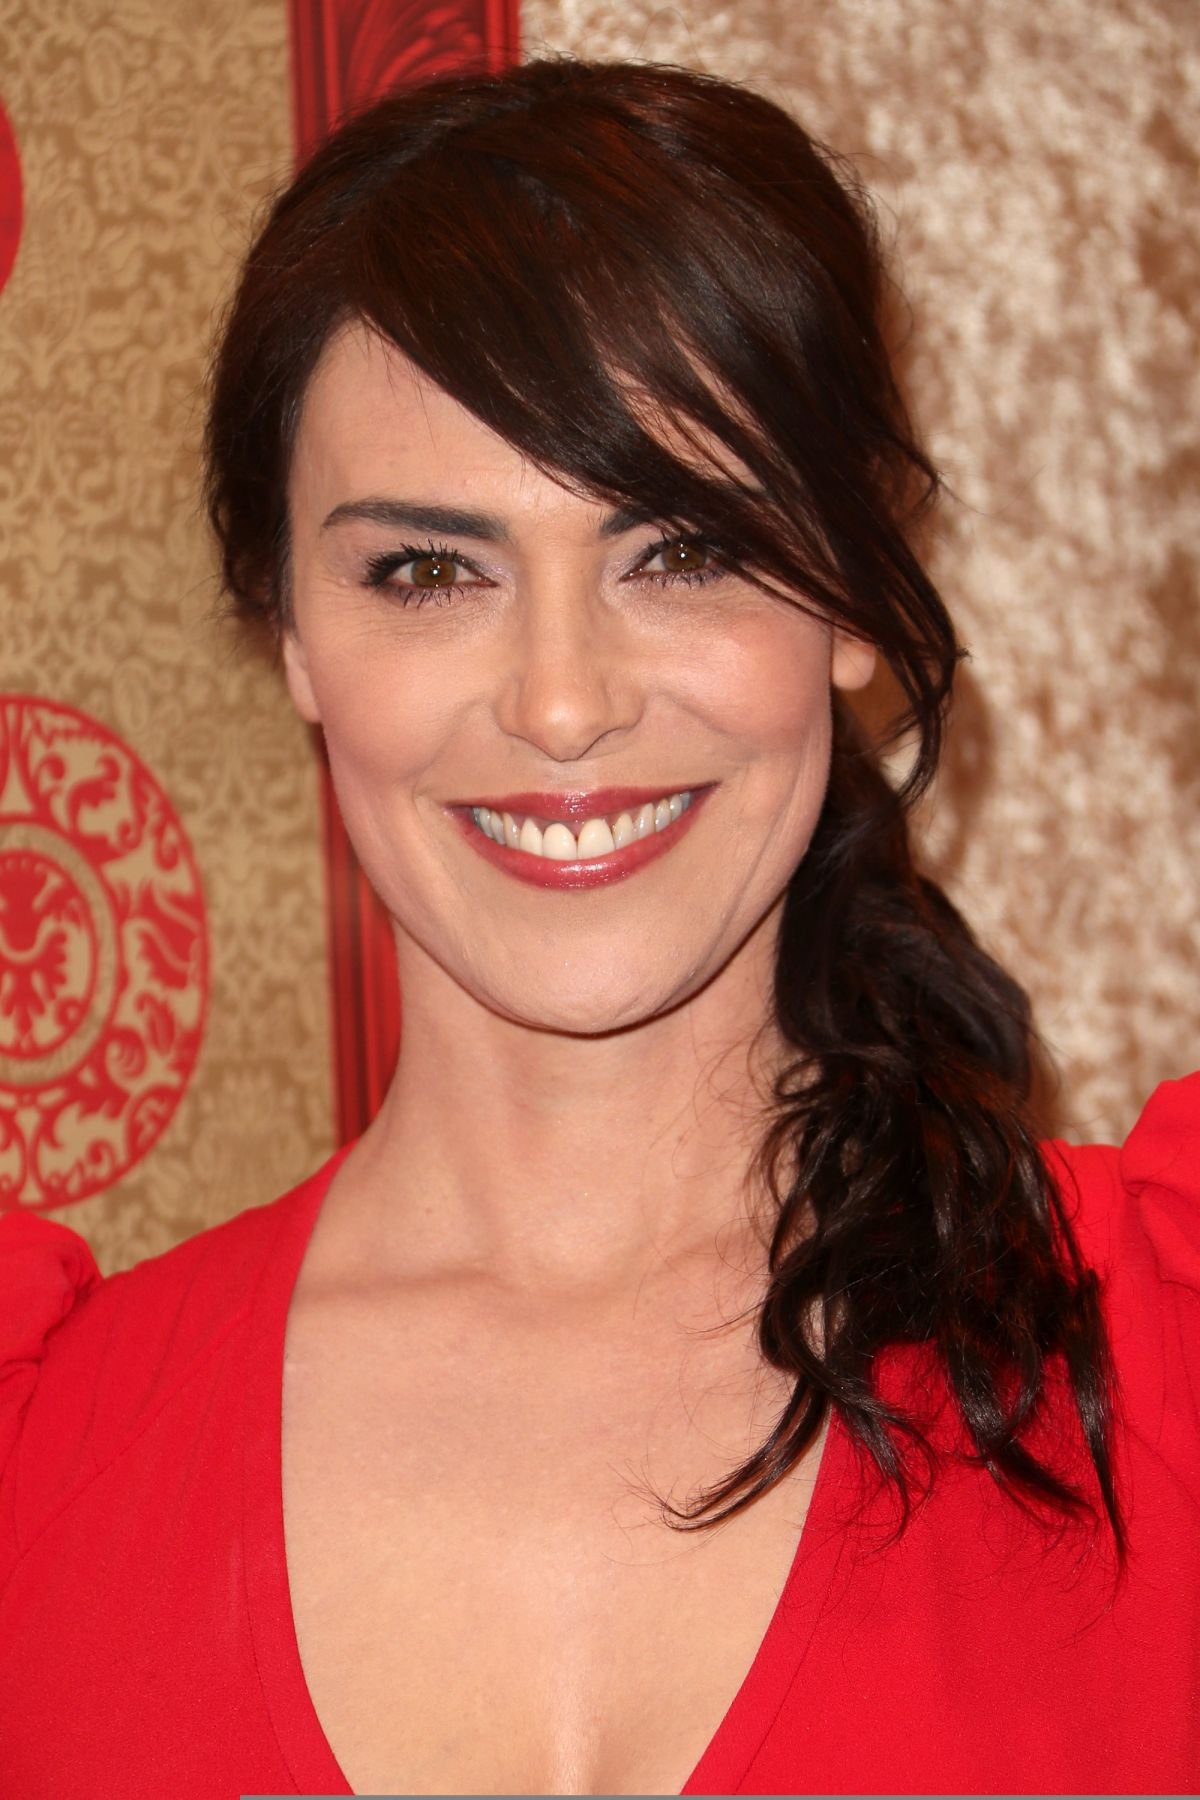 Michelle Forbes earned a 0.36 million dollar salary, leaving the net worth at 3 million in 2017